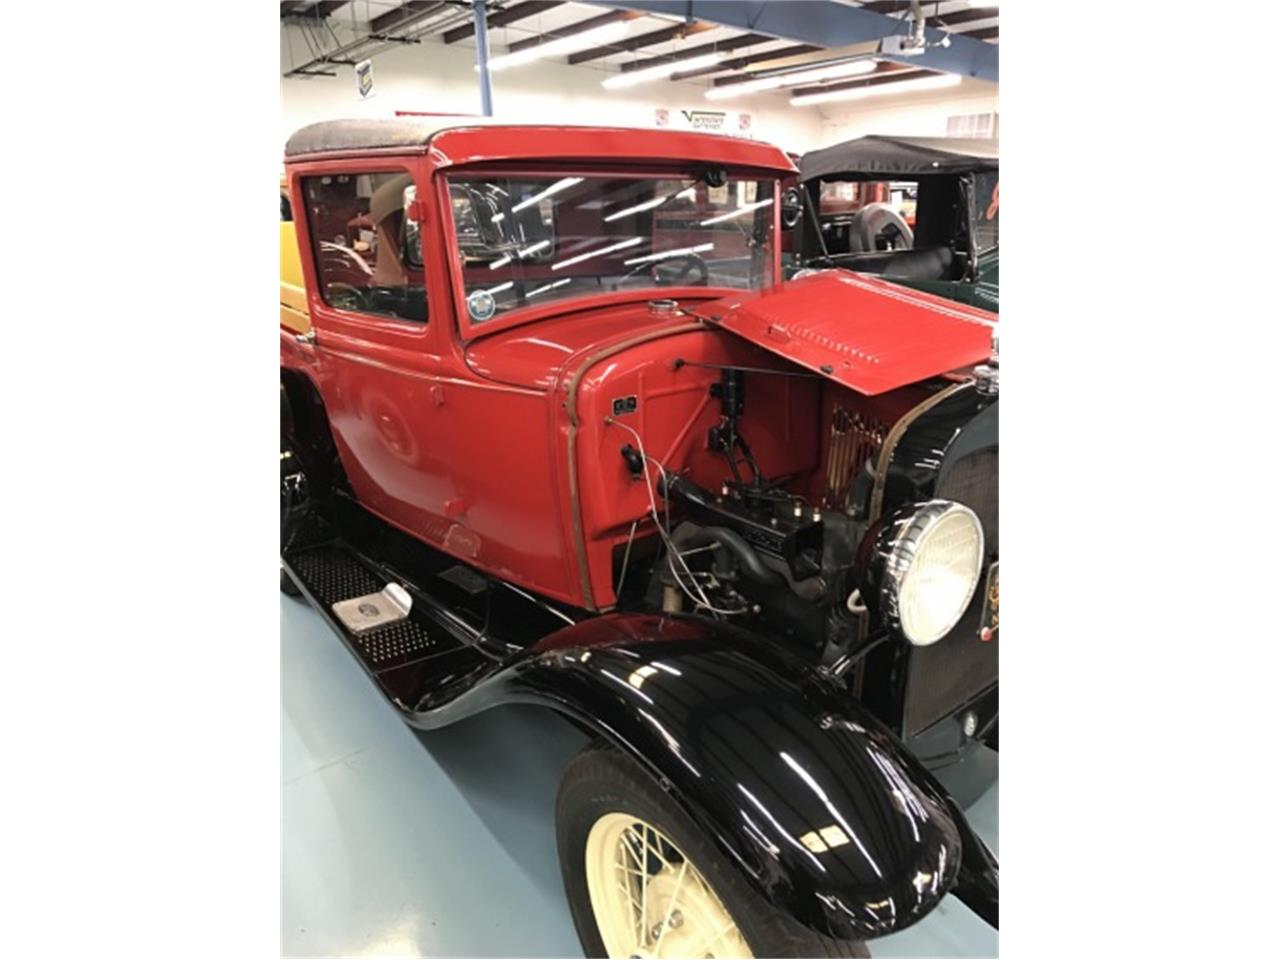 Large Picture of '30 Ford Model A located in Peoria Arizona Auction Vehicle - PNFB